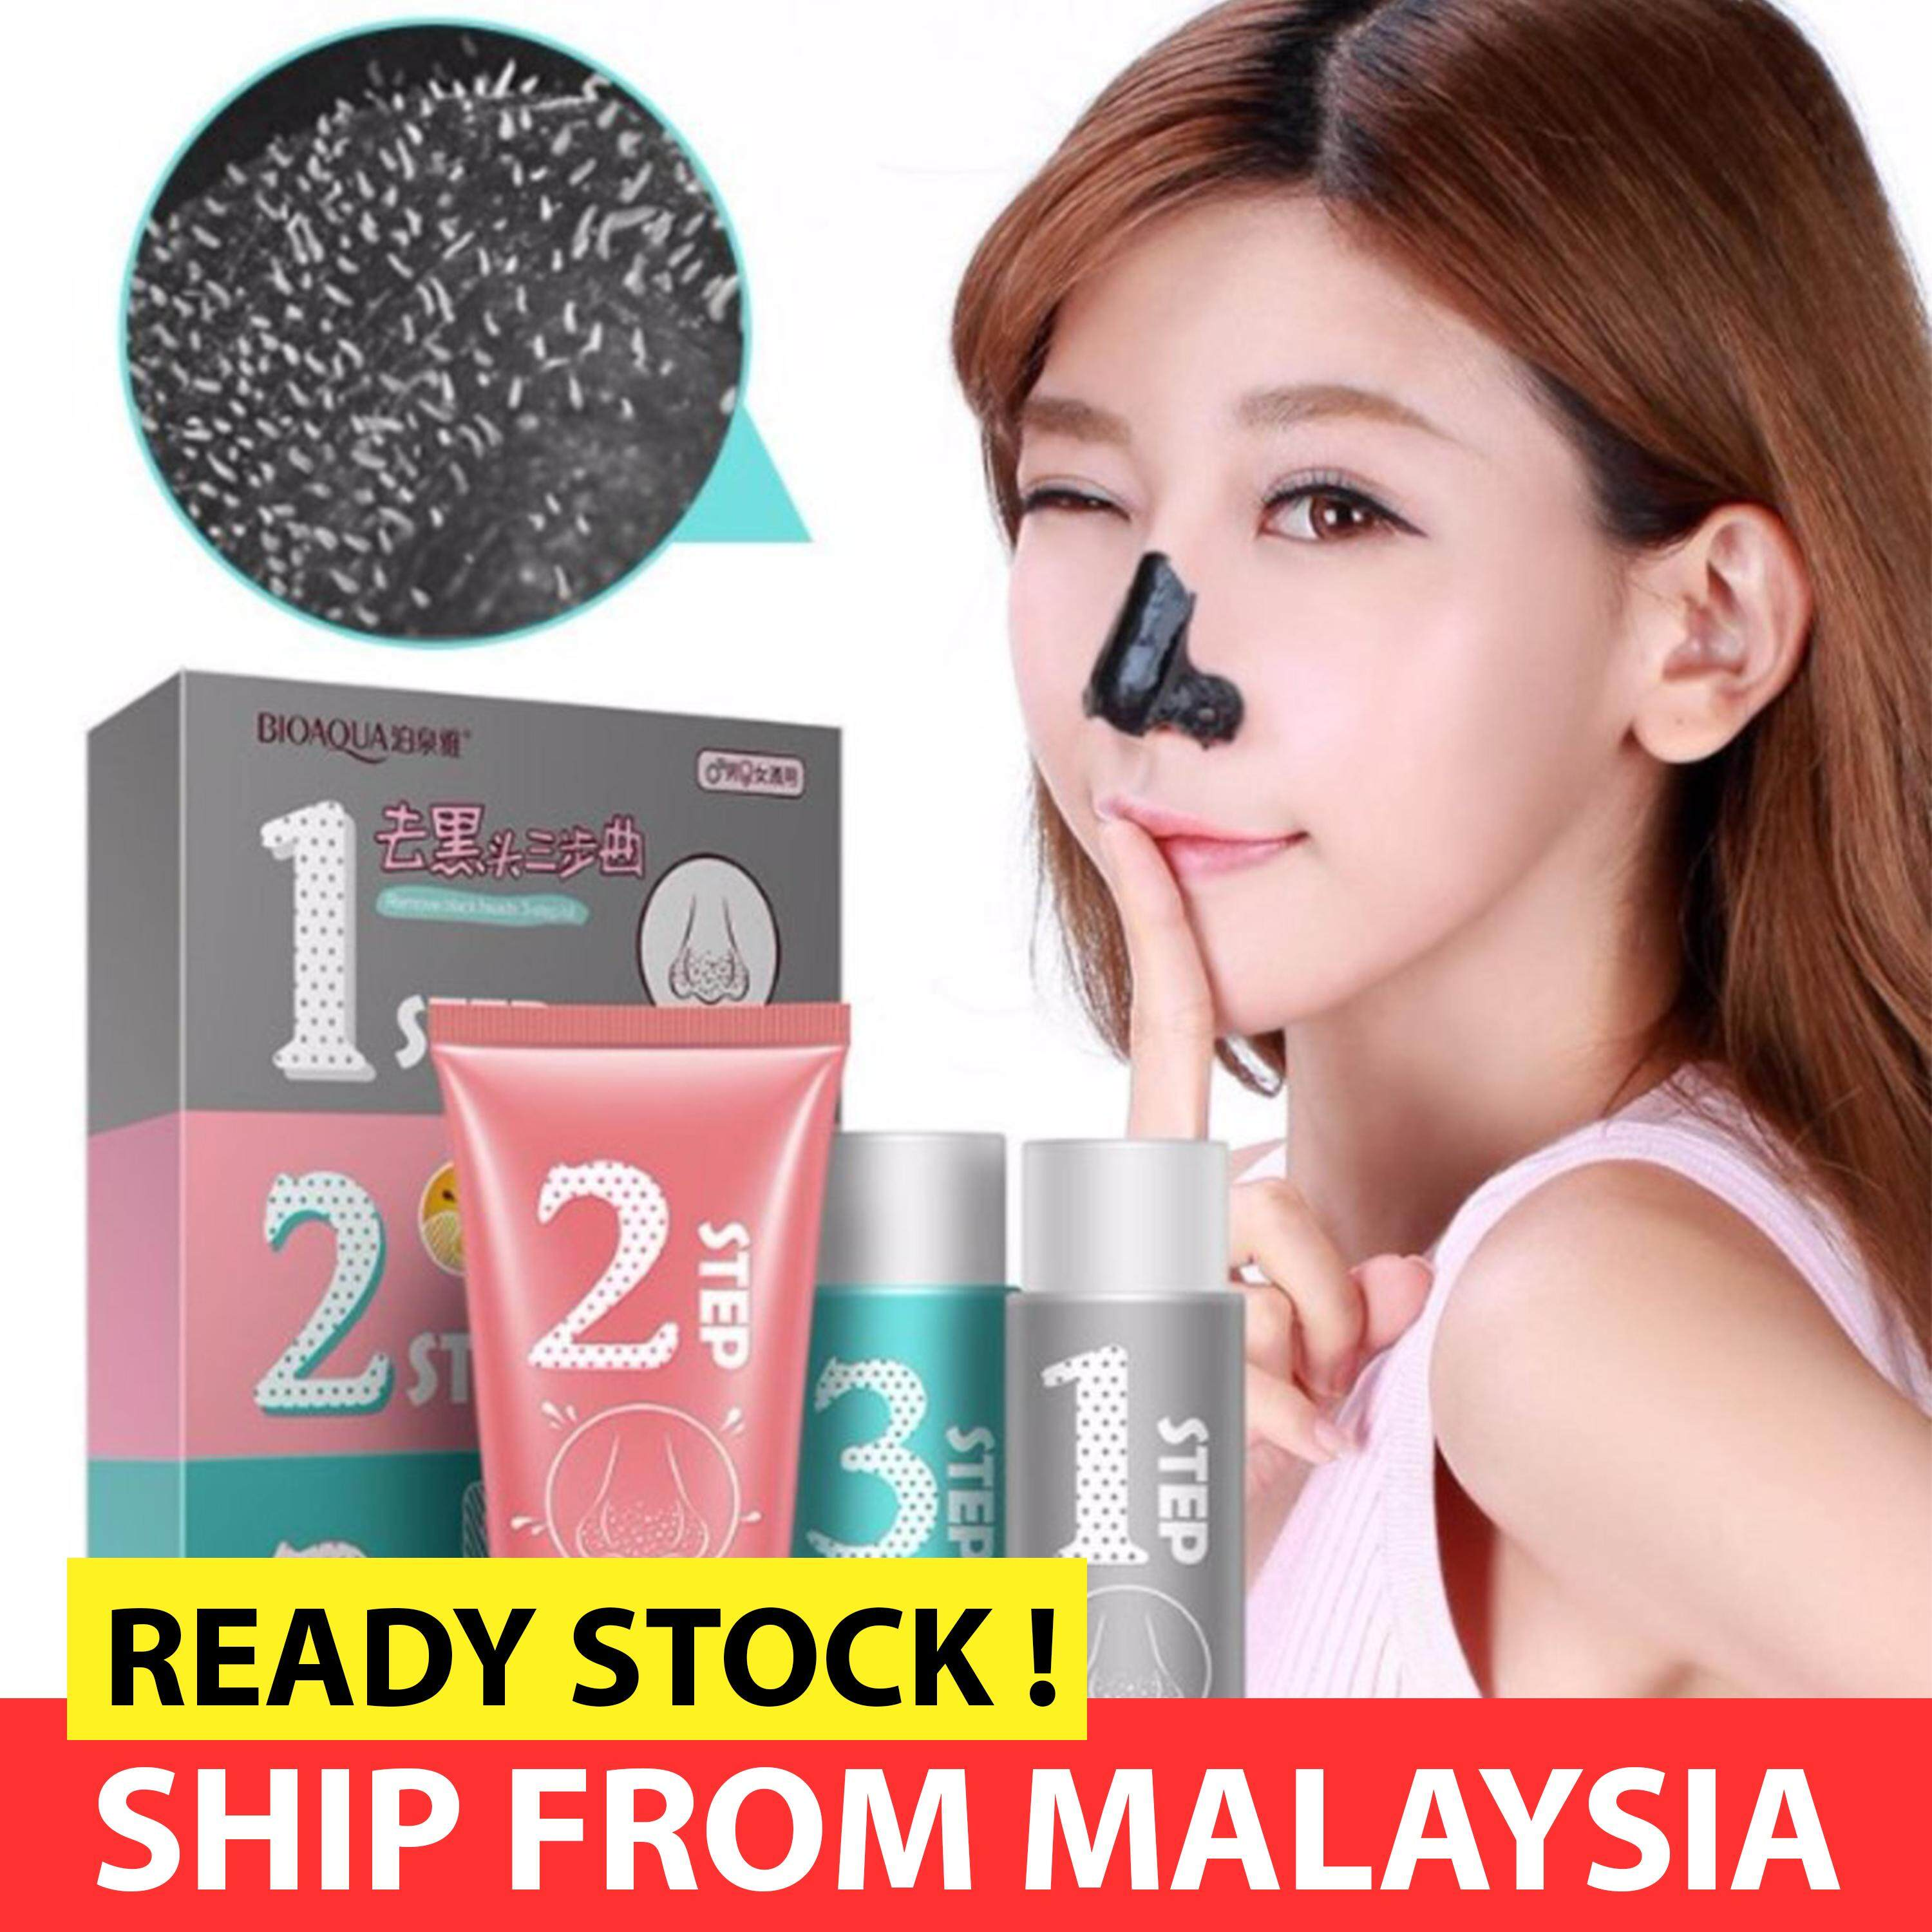 Bioaqua Skincare Face Masks Packs Price In Malaysia Best Vshaped Mask Sheet V Shaped Shape Set Of Natural Blackhead Removal 3 Step Easy Kit Ready Stock